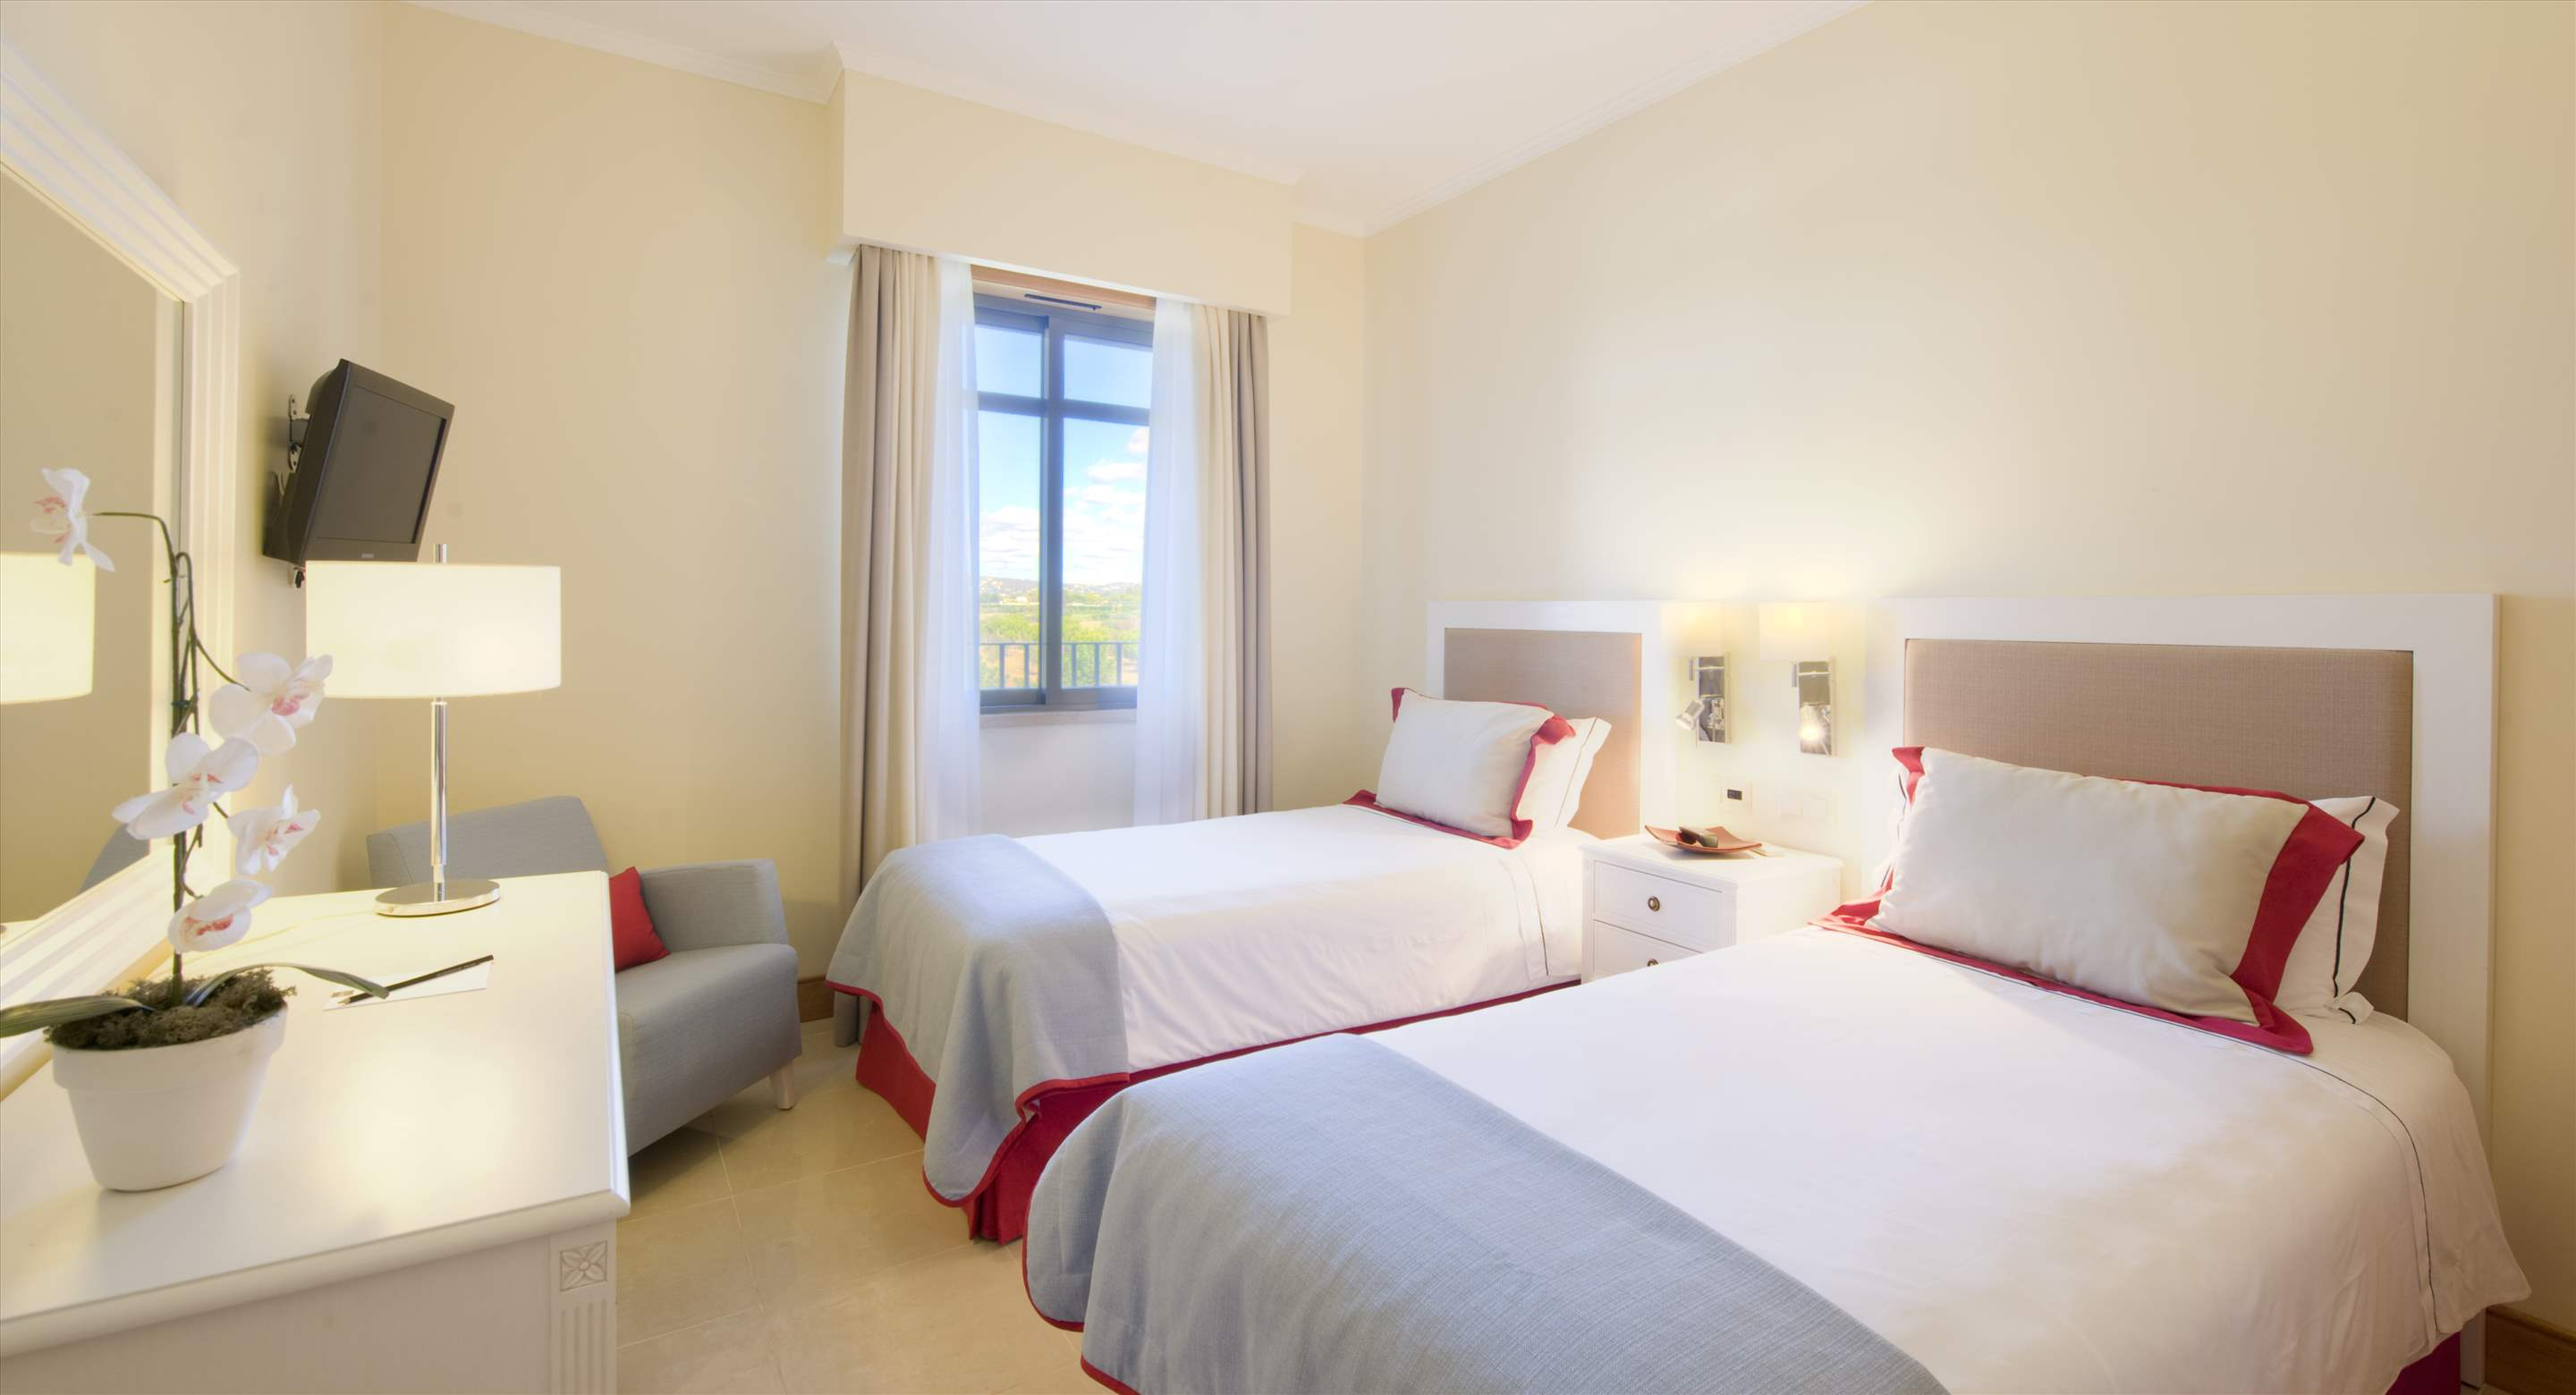 The Residences at Victoria by TIVOLI 2 Bed Apt , Deluxe,Golf or Pool View, 2 bedroom apartment in The Residences at Victoria by TIVOLI, Algarve Photo #6